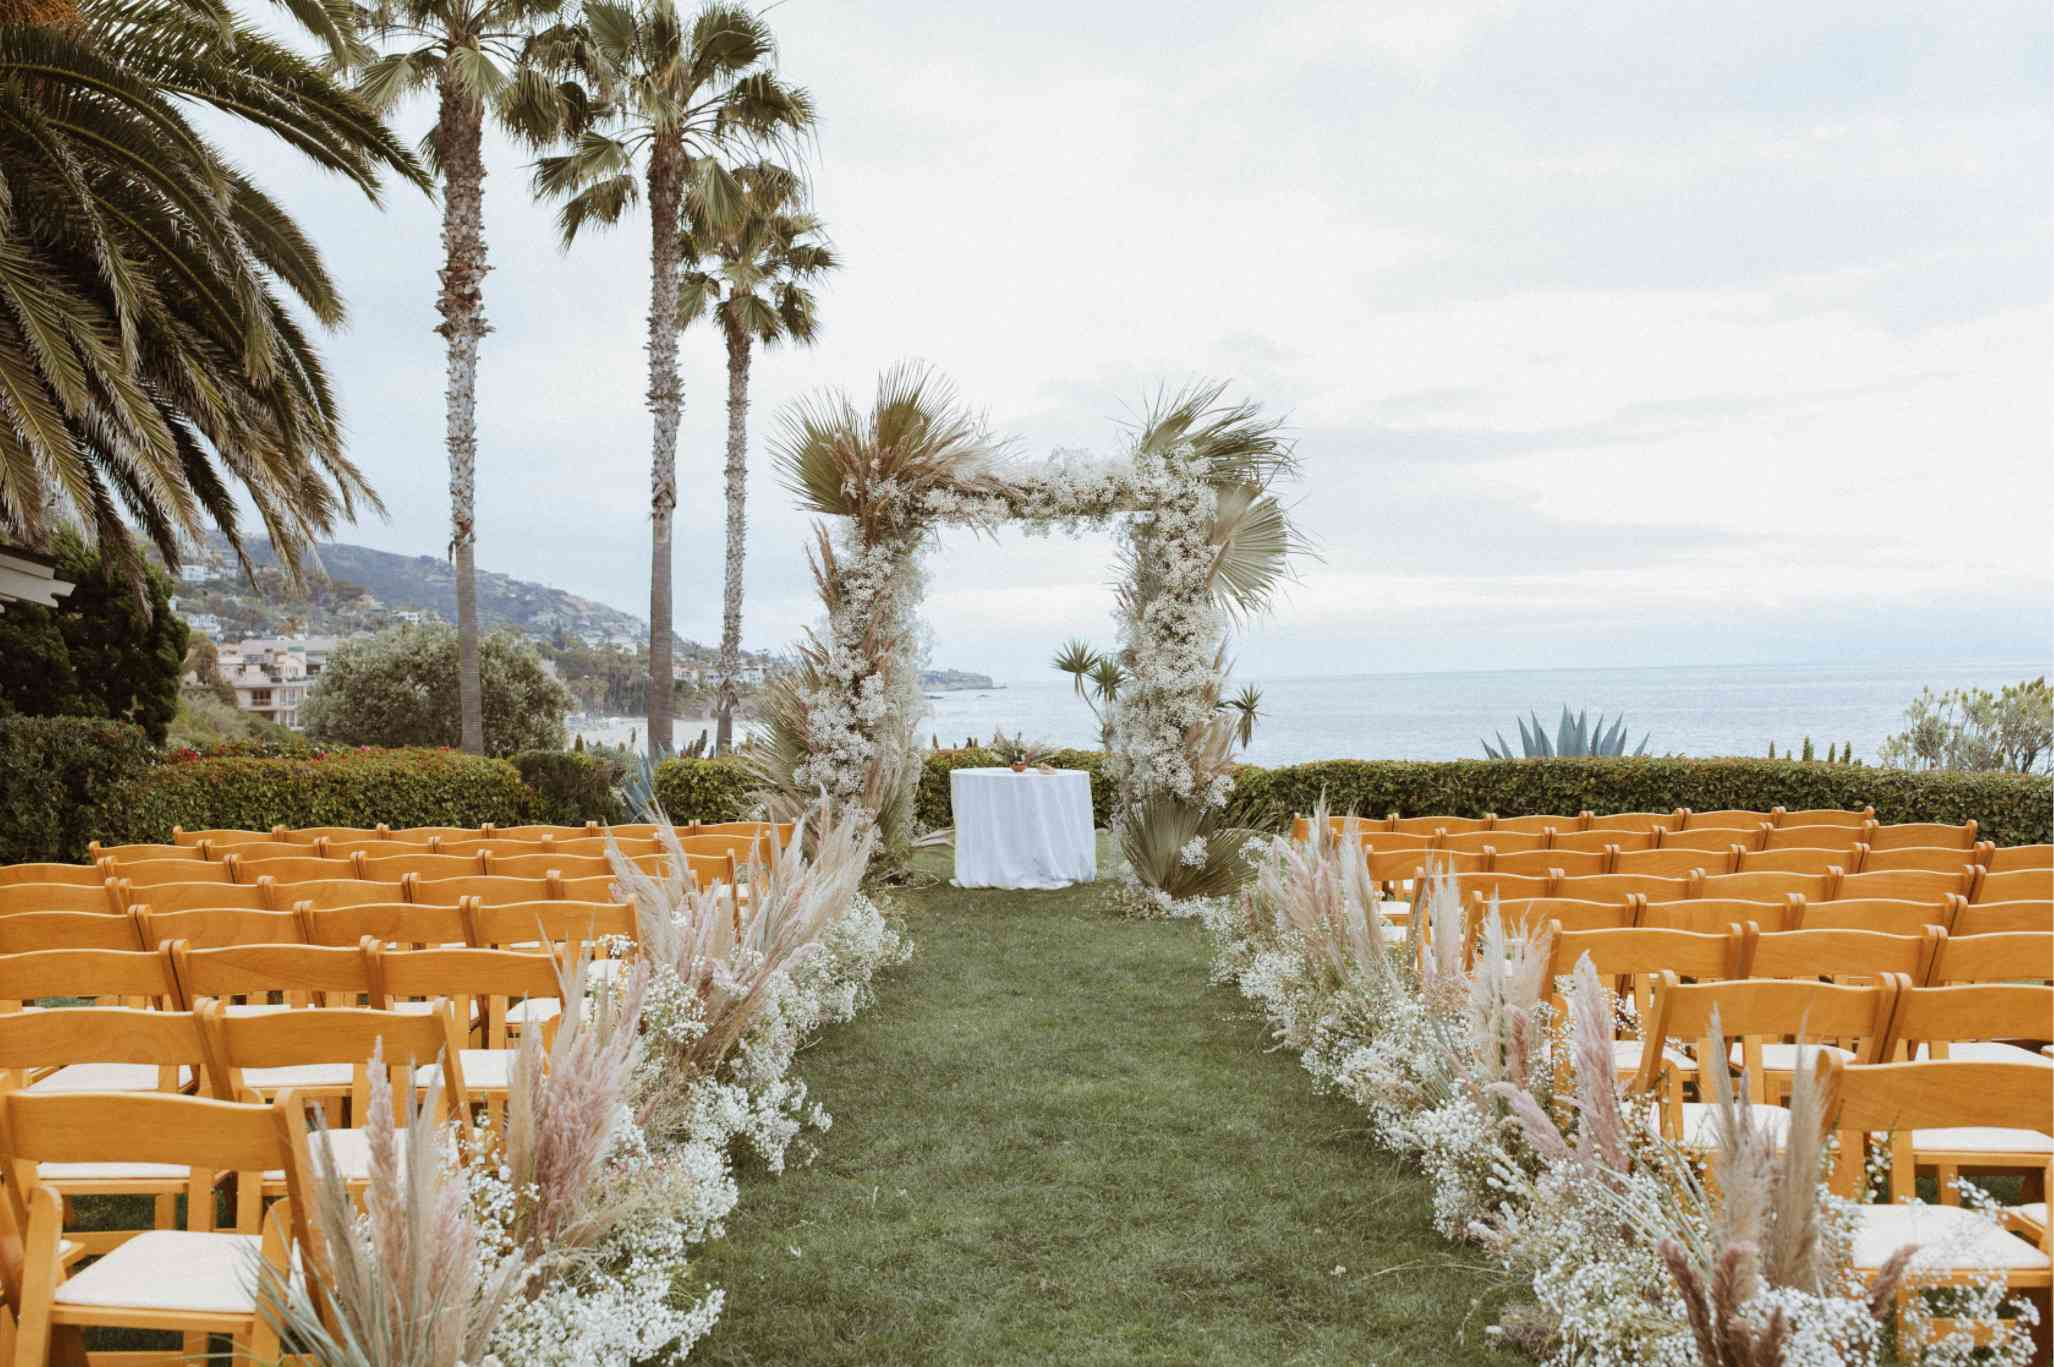 Chuppah covered in pampas grass, dried palm leaves, and baby's breath